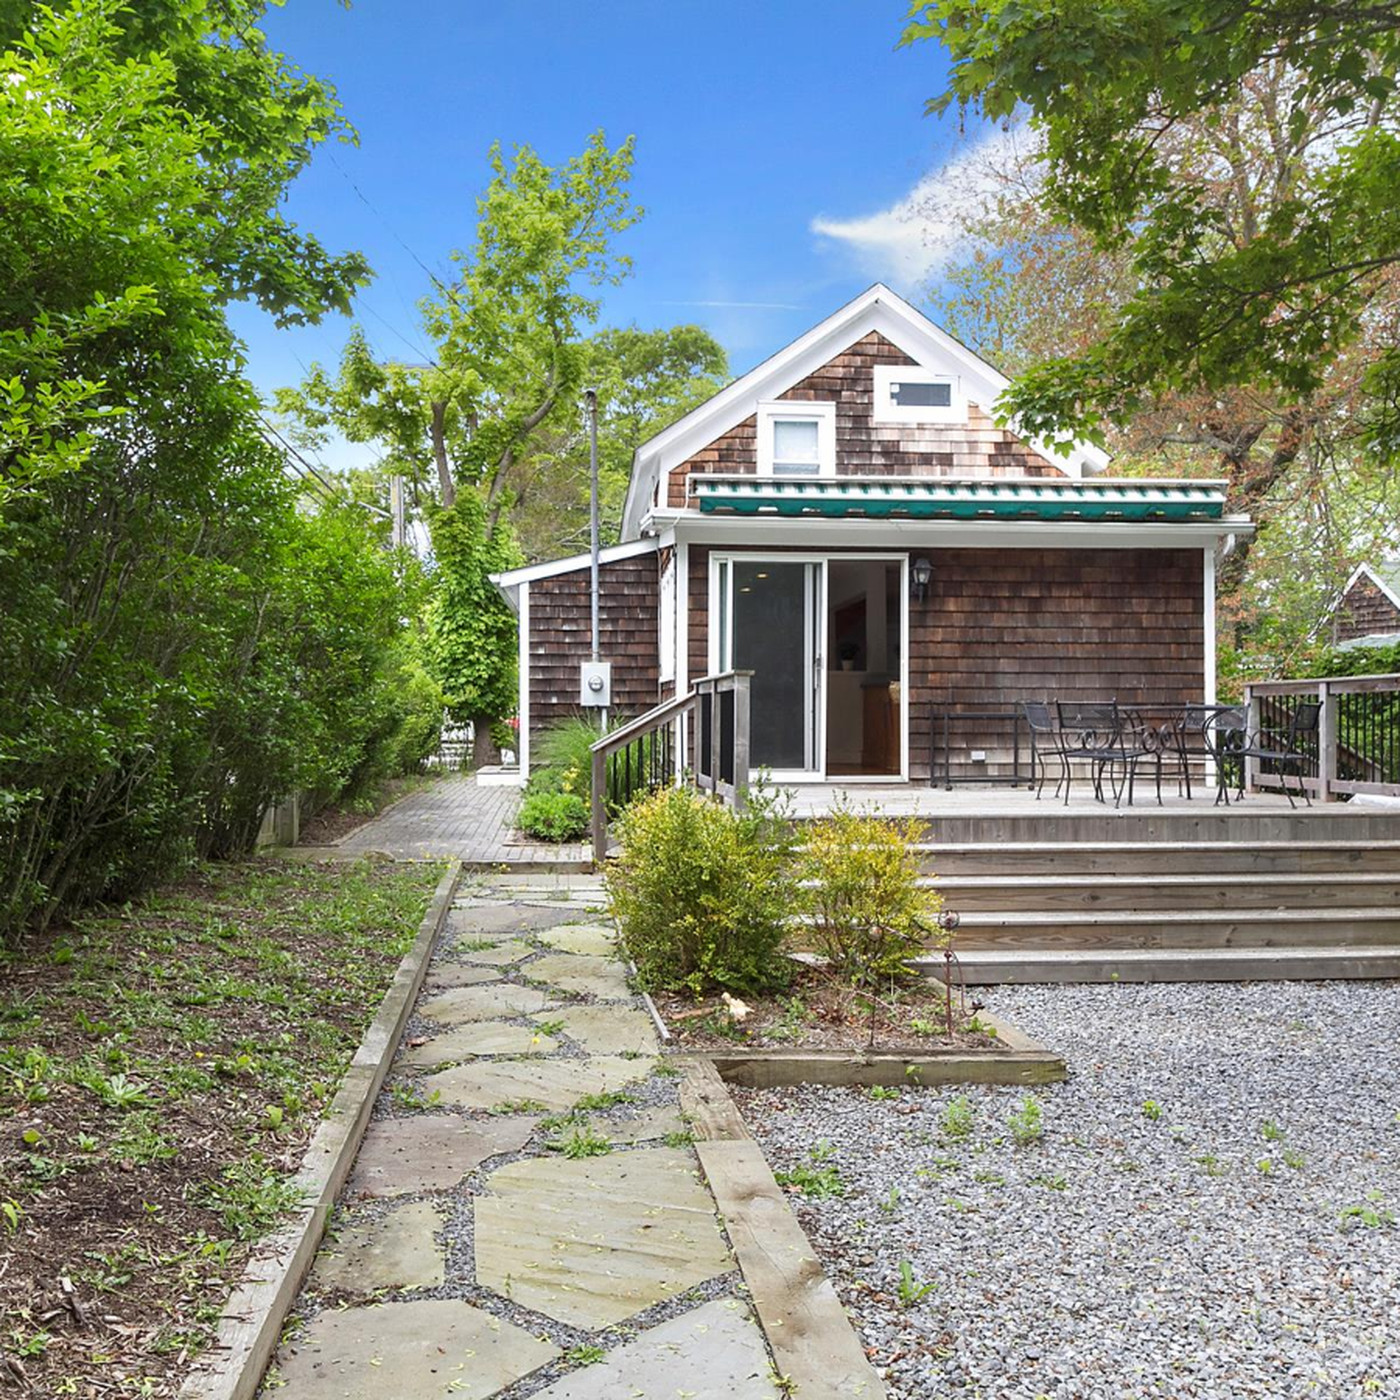 Sag Harbor home from 1880 with 1,105 sq  ft  cuts price, now